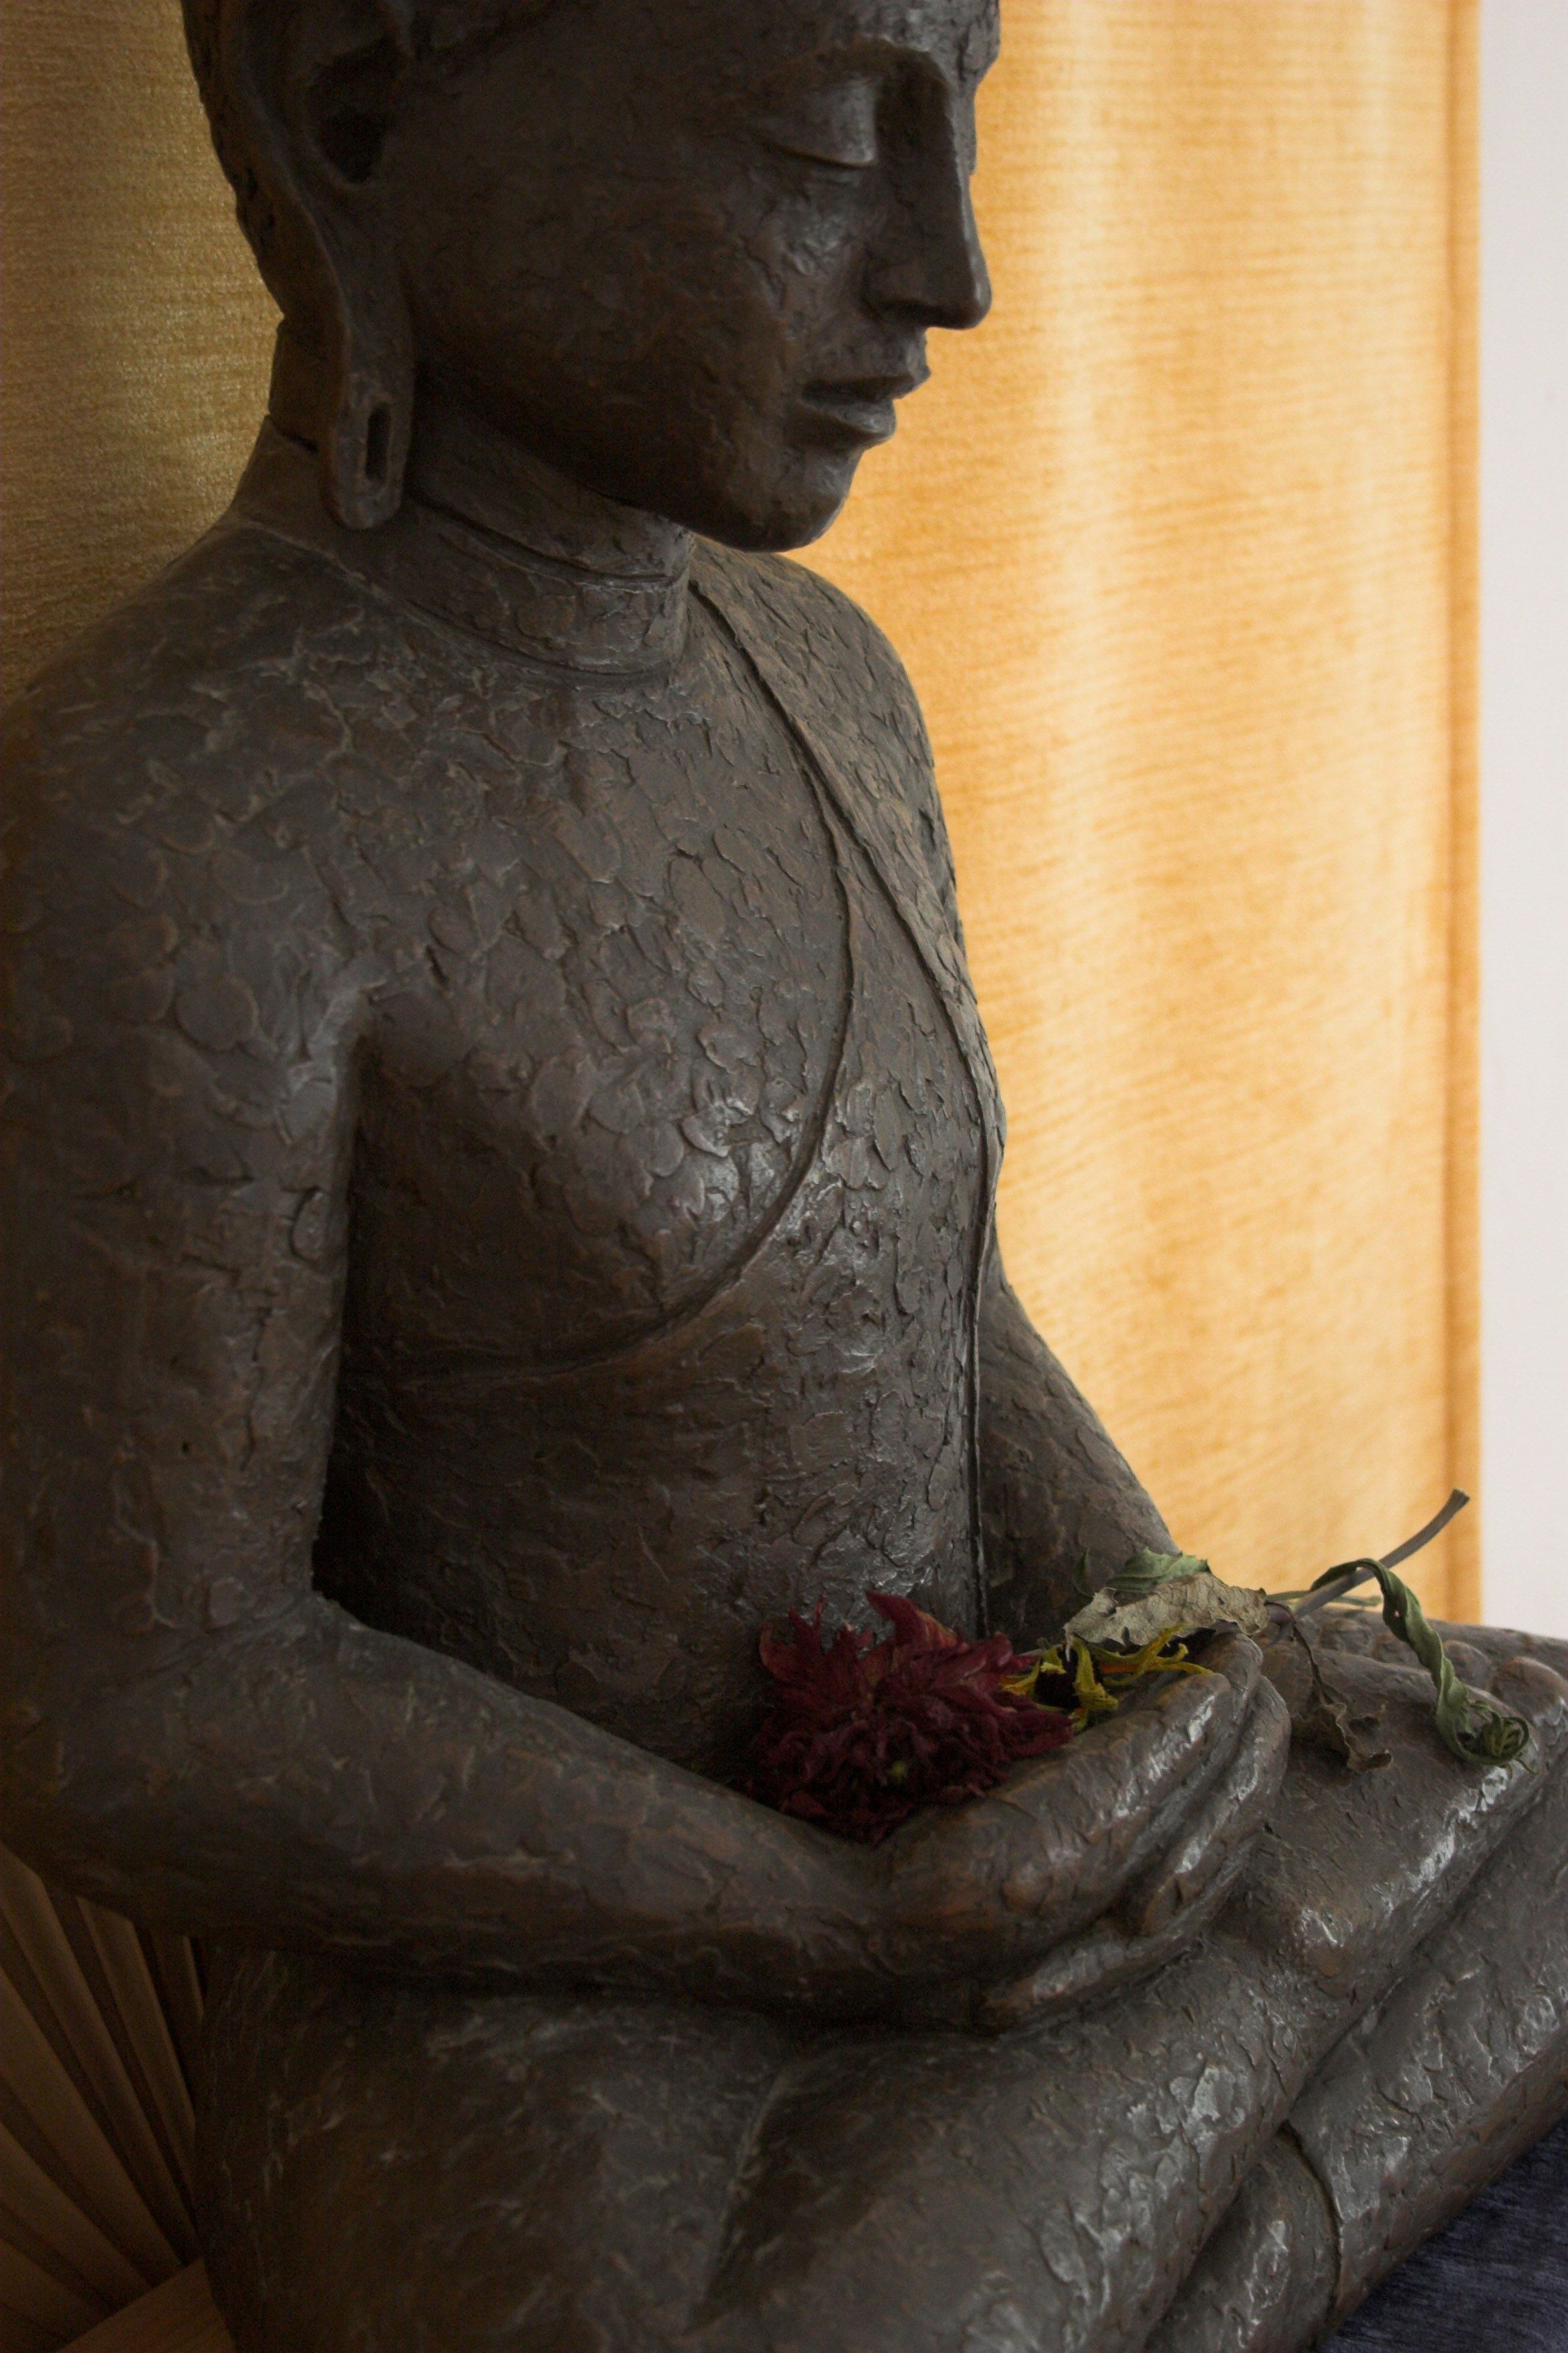 bow buddhist meditation group springfield mo buddhism in ...